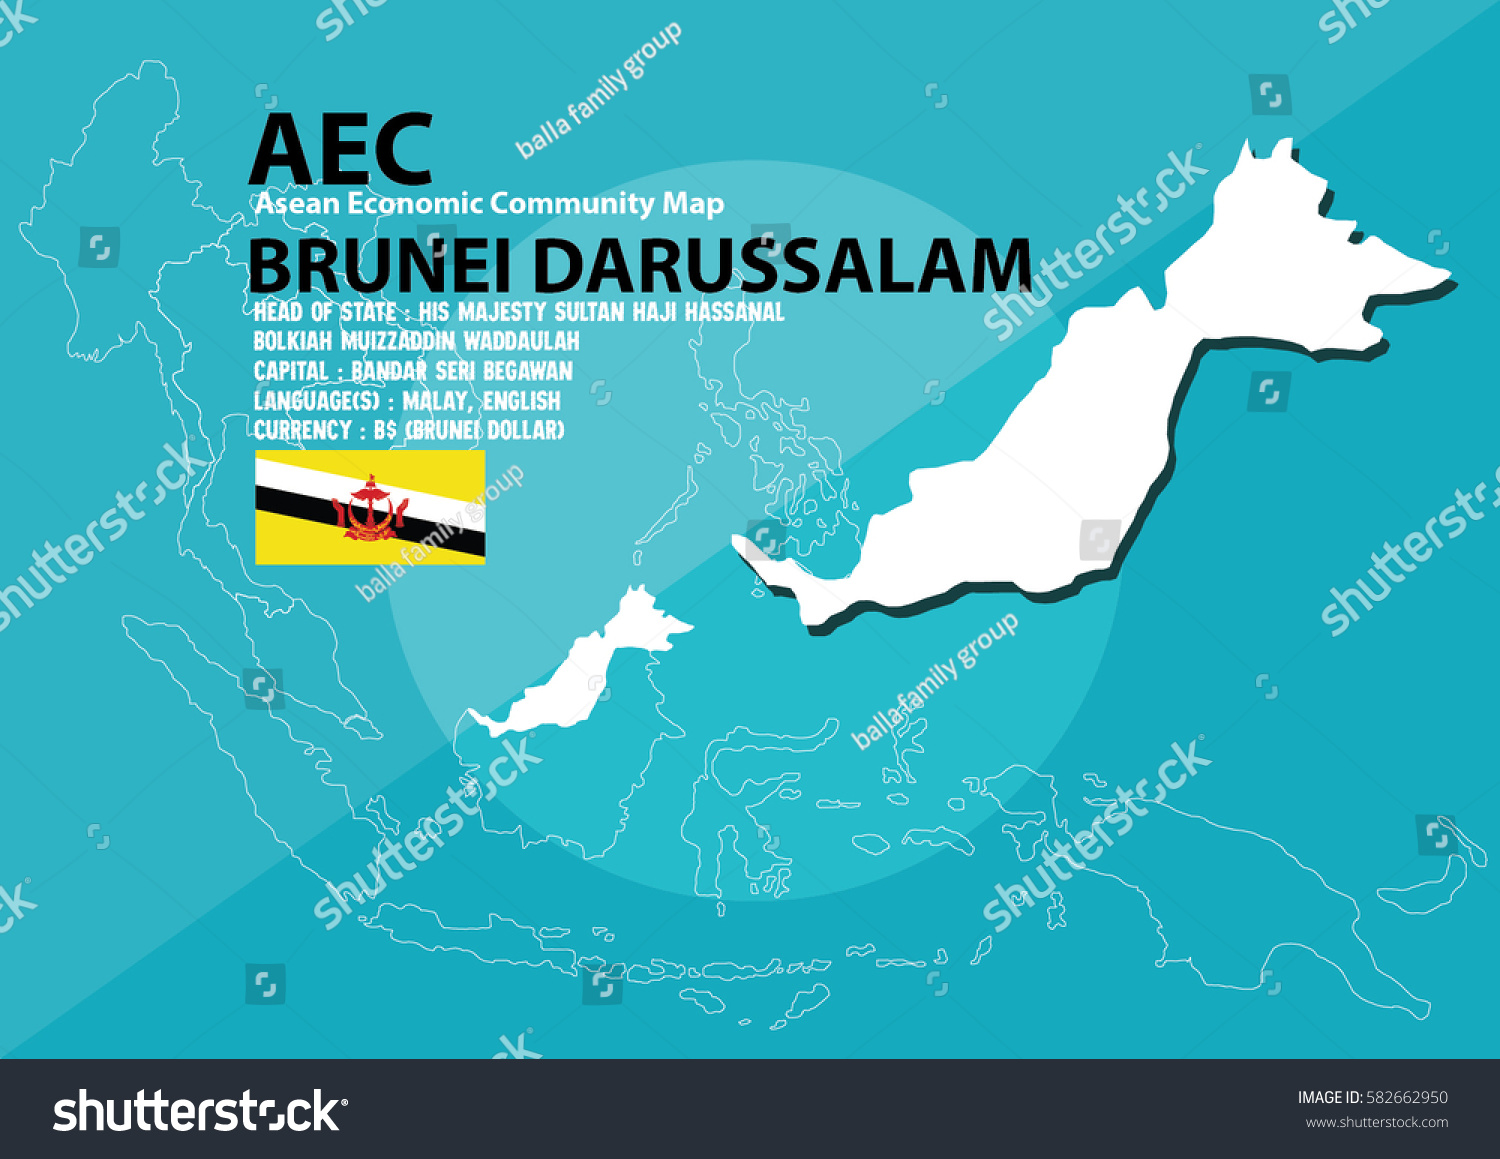 Brunei darussalam world map brunei darussalam stock vector brunei darussalam world map brunei darussalam are in southeast asia and in aec group gumiabroncs Image collections